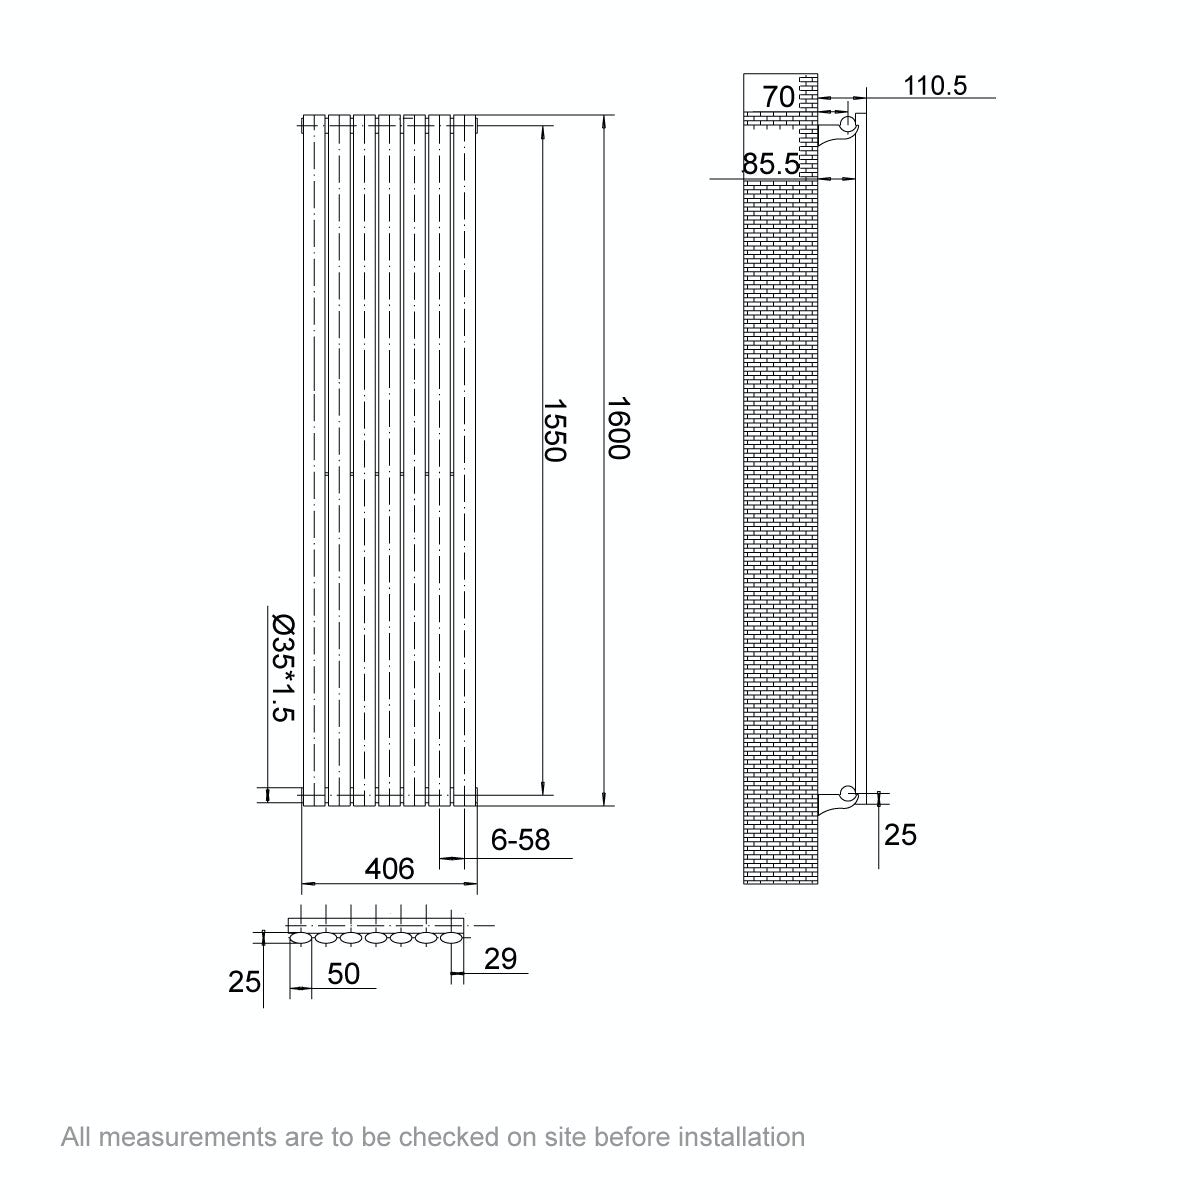 Dimensions for Mode Tate white single vertical radiator 1600 x 406